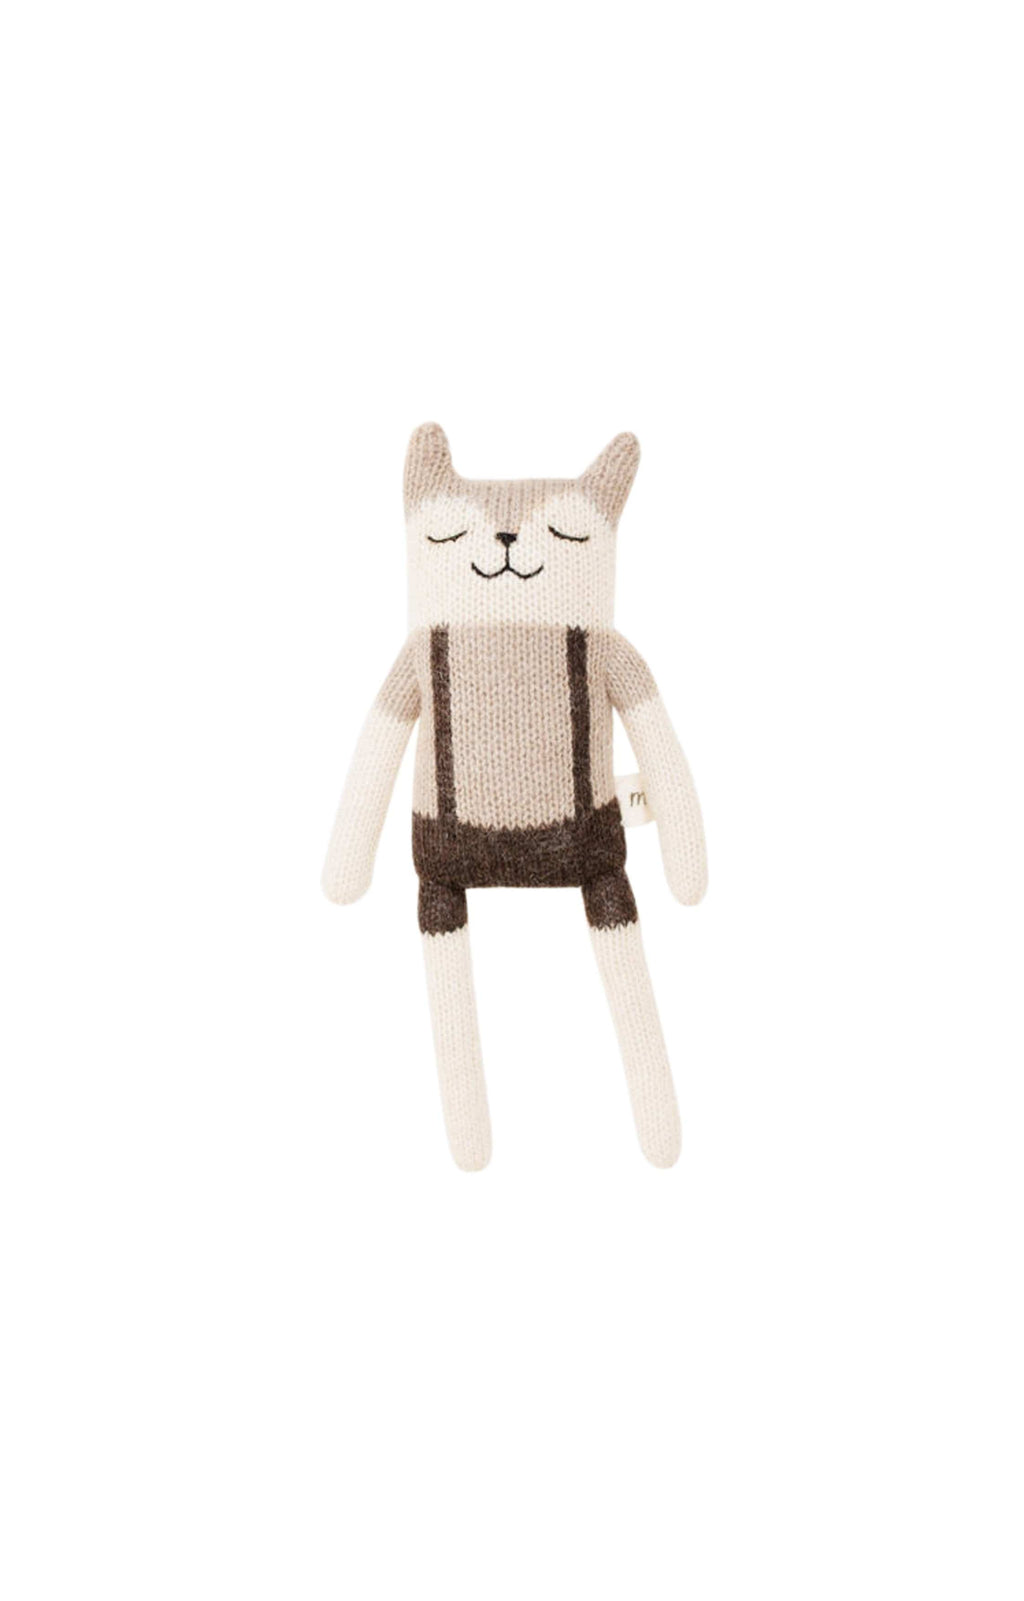 Main Sauvage fawn knit toy with overalls - Hello Little Birdie